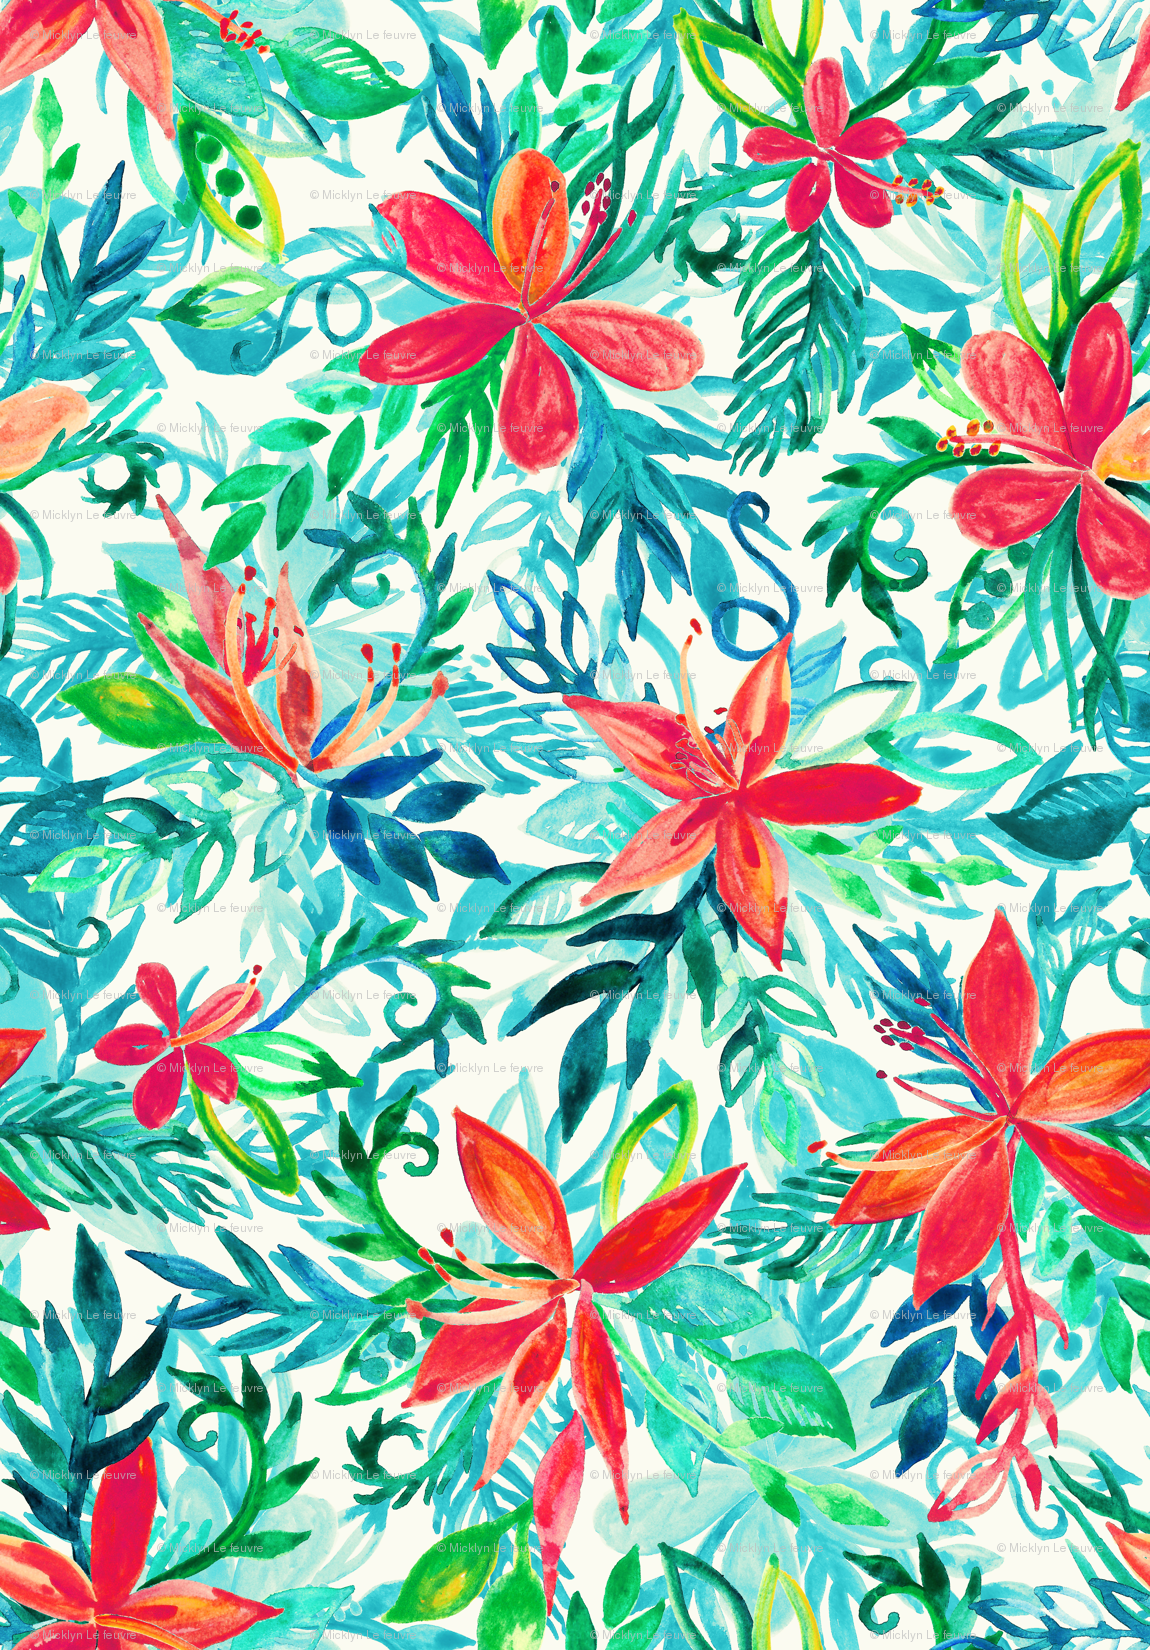 Bright Colors Tropical Watercolor Floral 1043445 Png Images Pngio